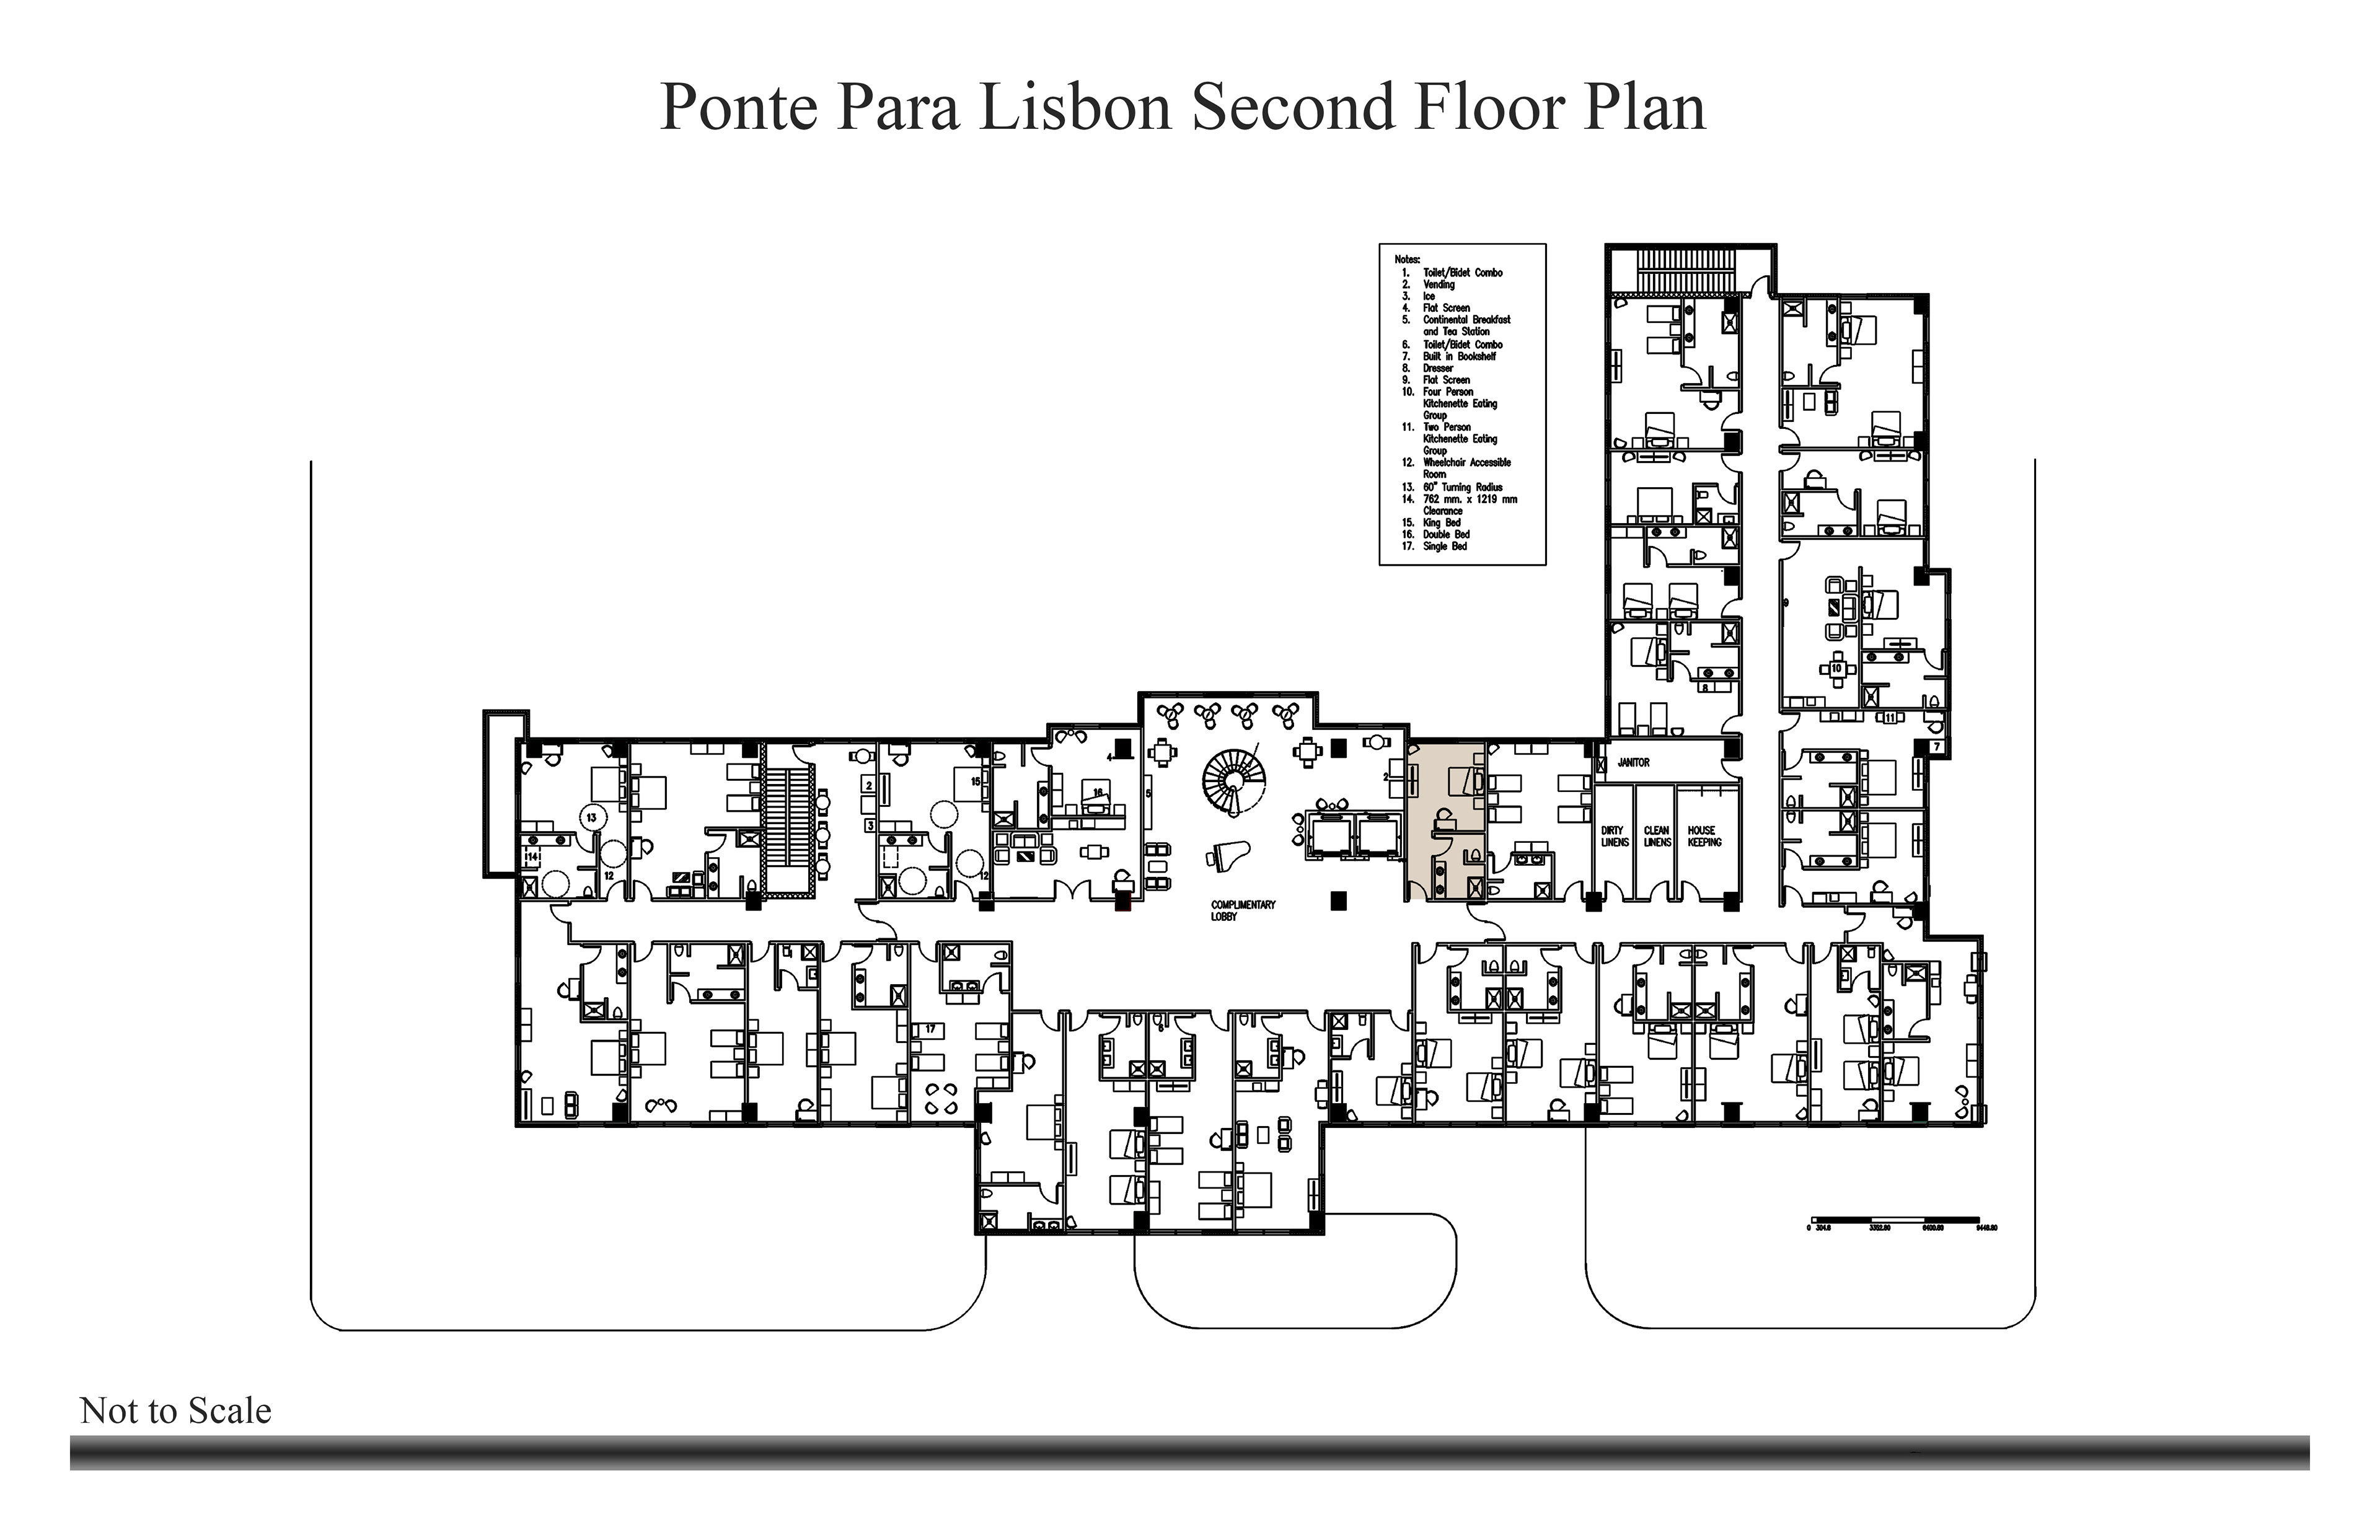 Digital drawings of floor plans, reflected ceiling plans, electrical plans,  lighting plans, elevations, and mill work.